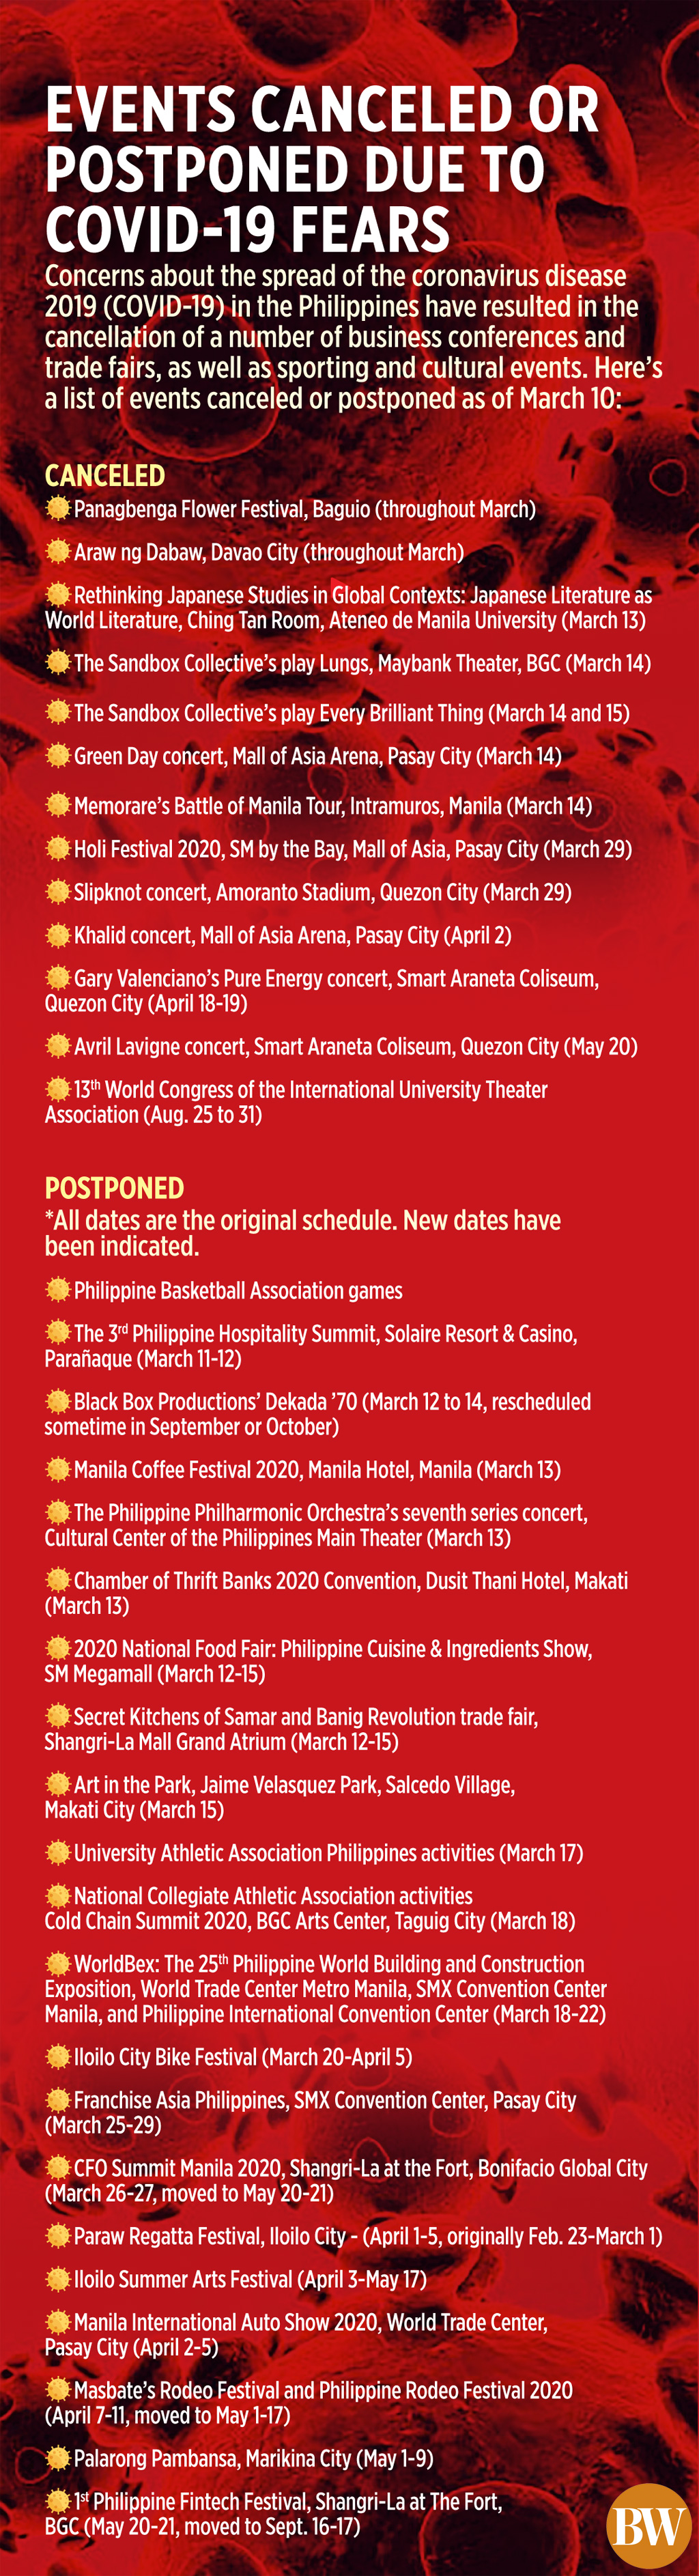 Philippine events cancelled or postponed due to COVID-19 fears (as of 03/11/20)